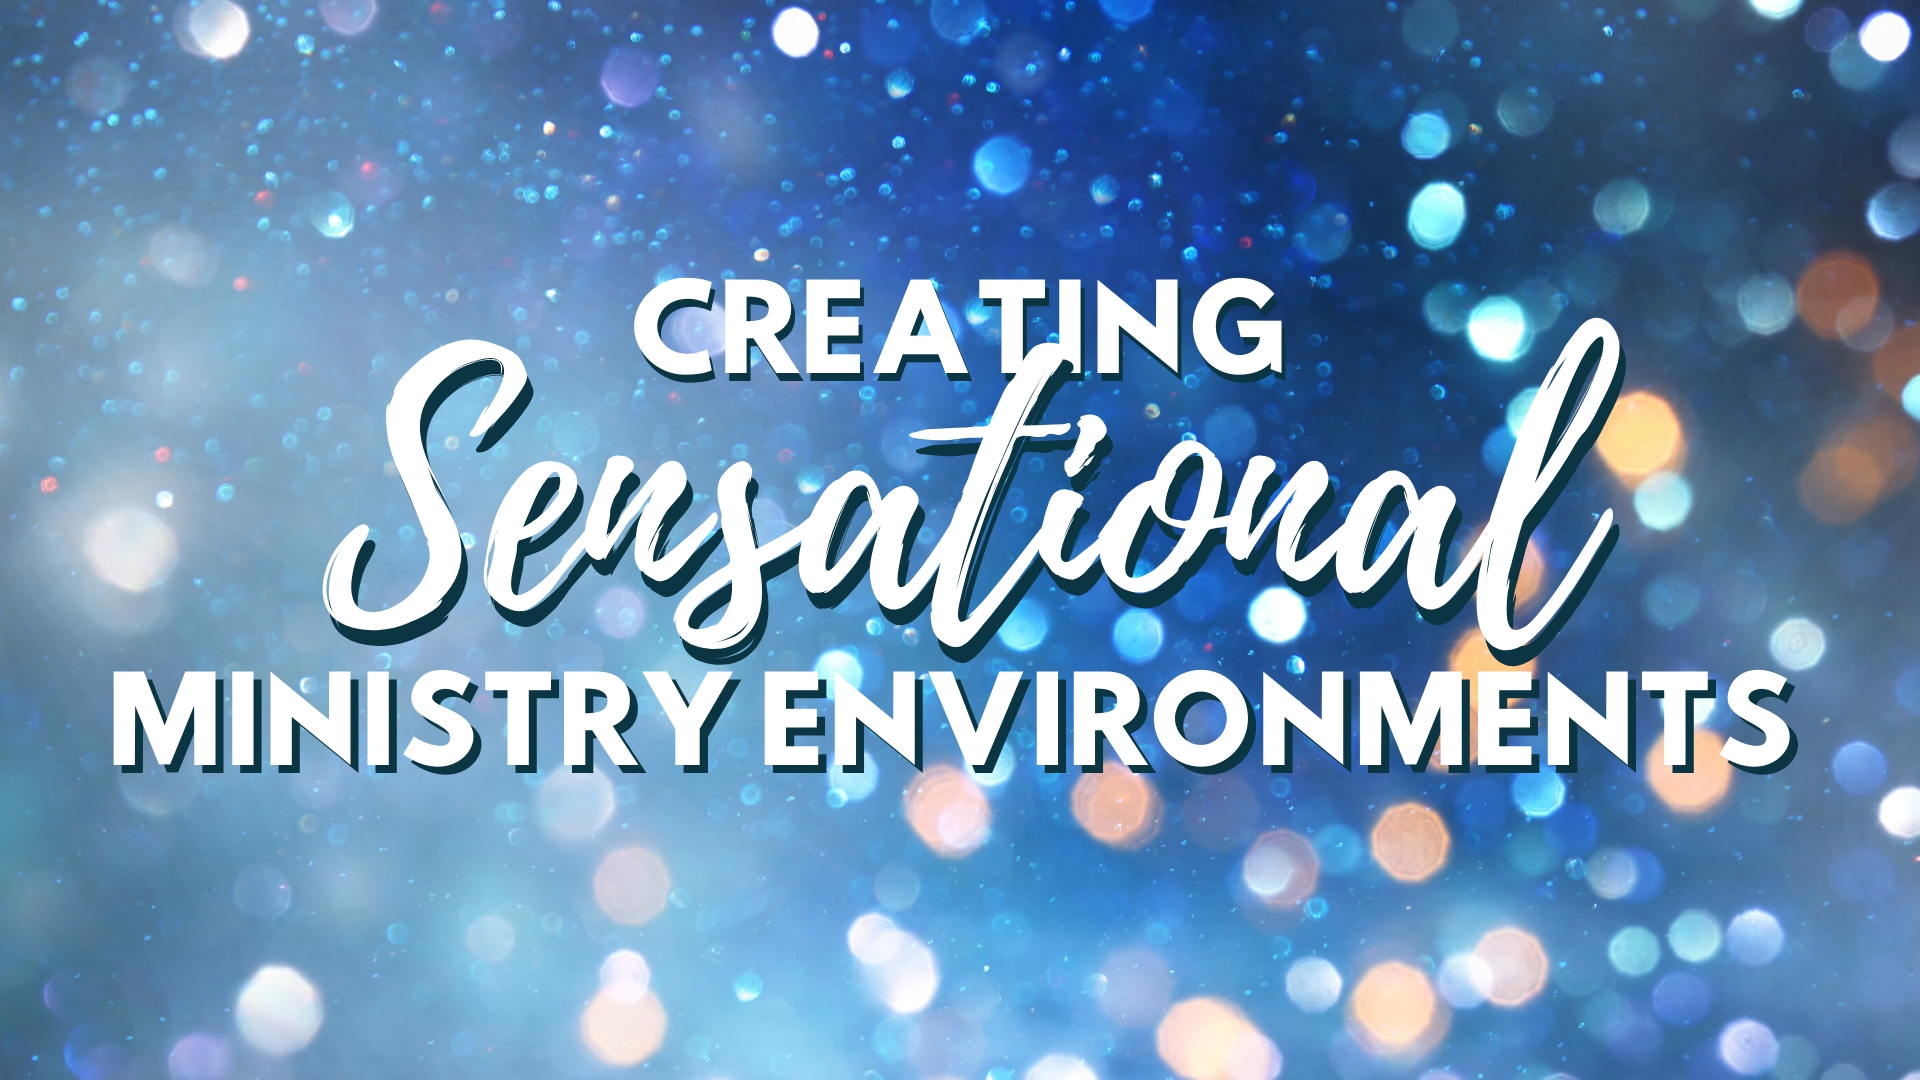 Webinar: Creating Sensational Ministry Environments